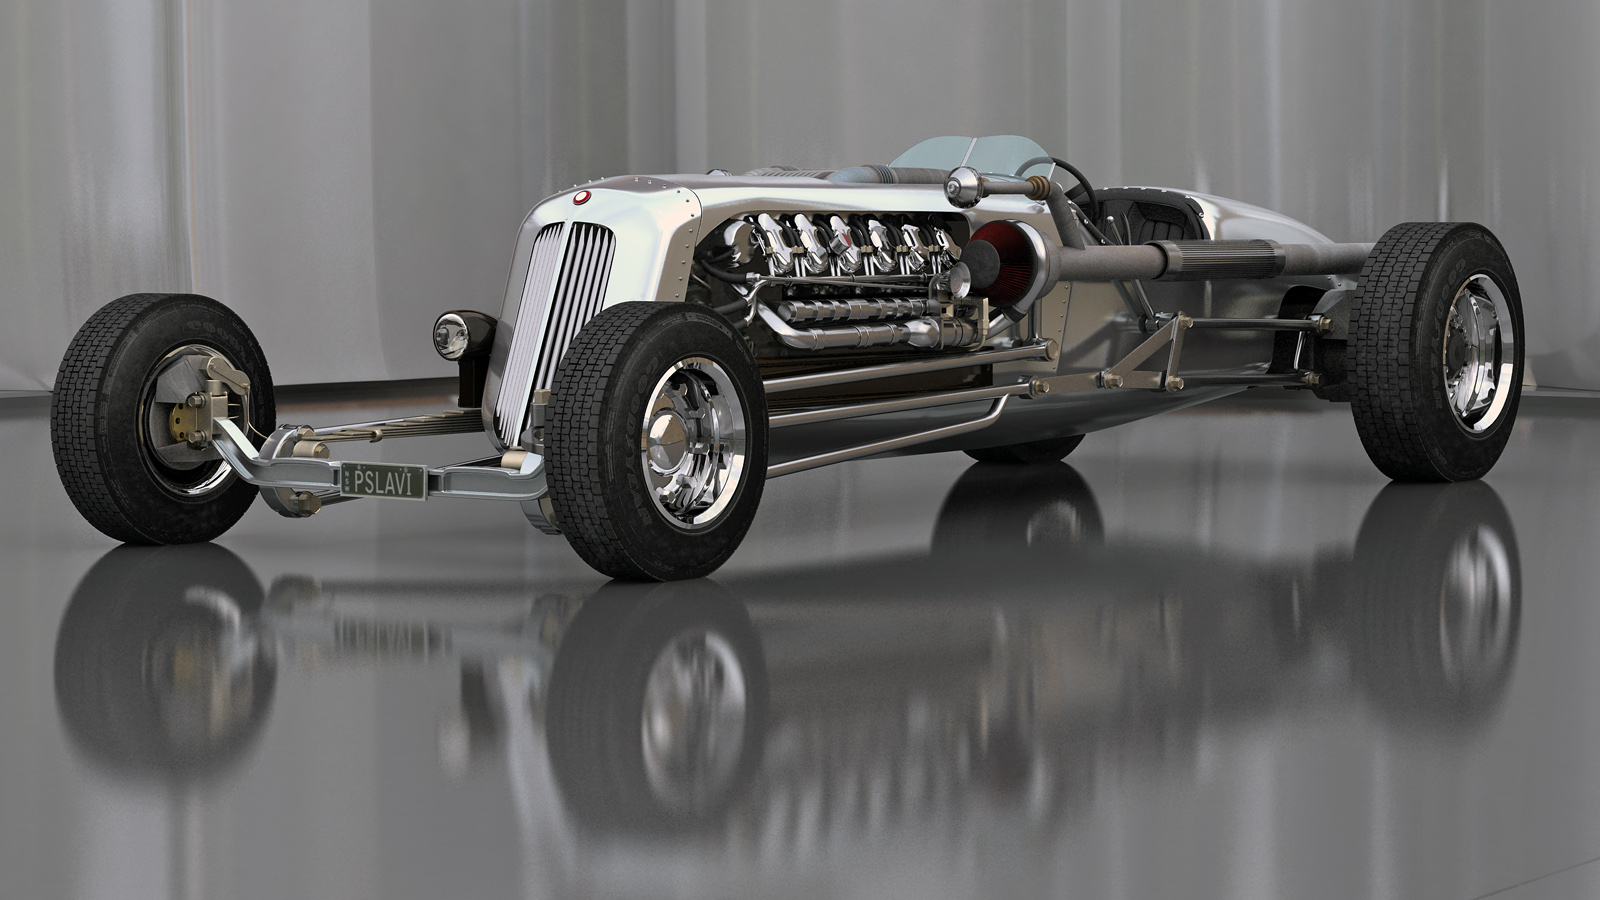 Fourtitude com - Packard, Ford, Rolls Royce, and a V12